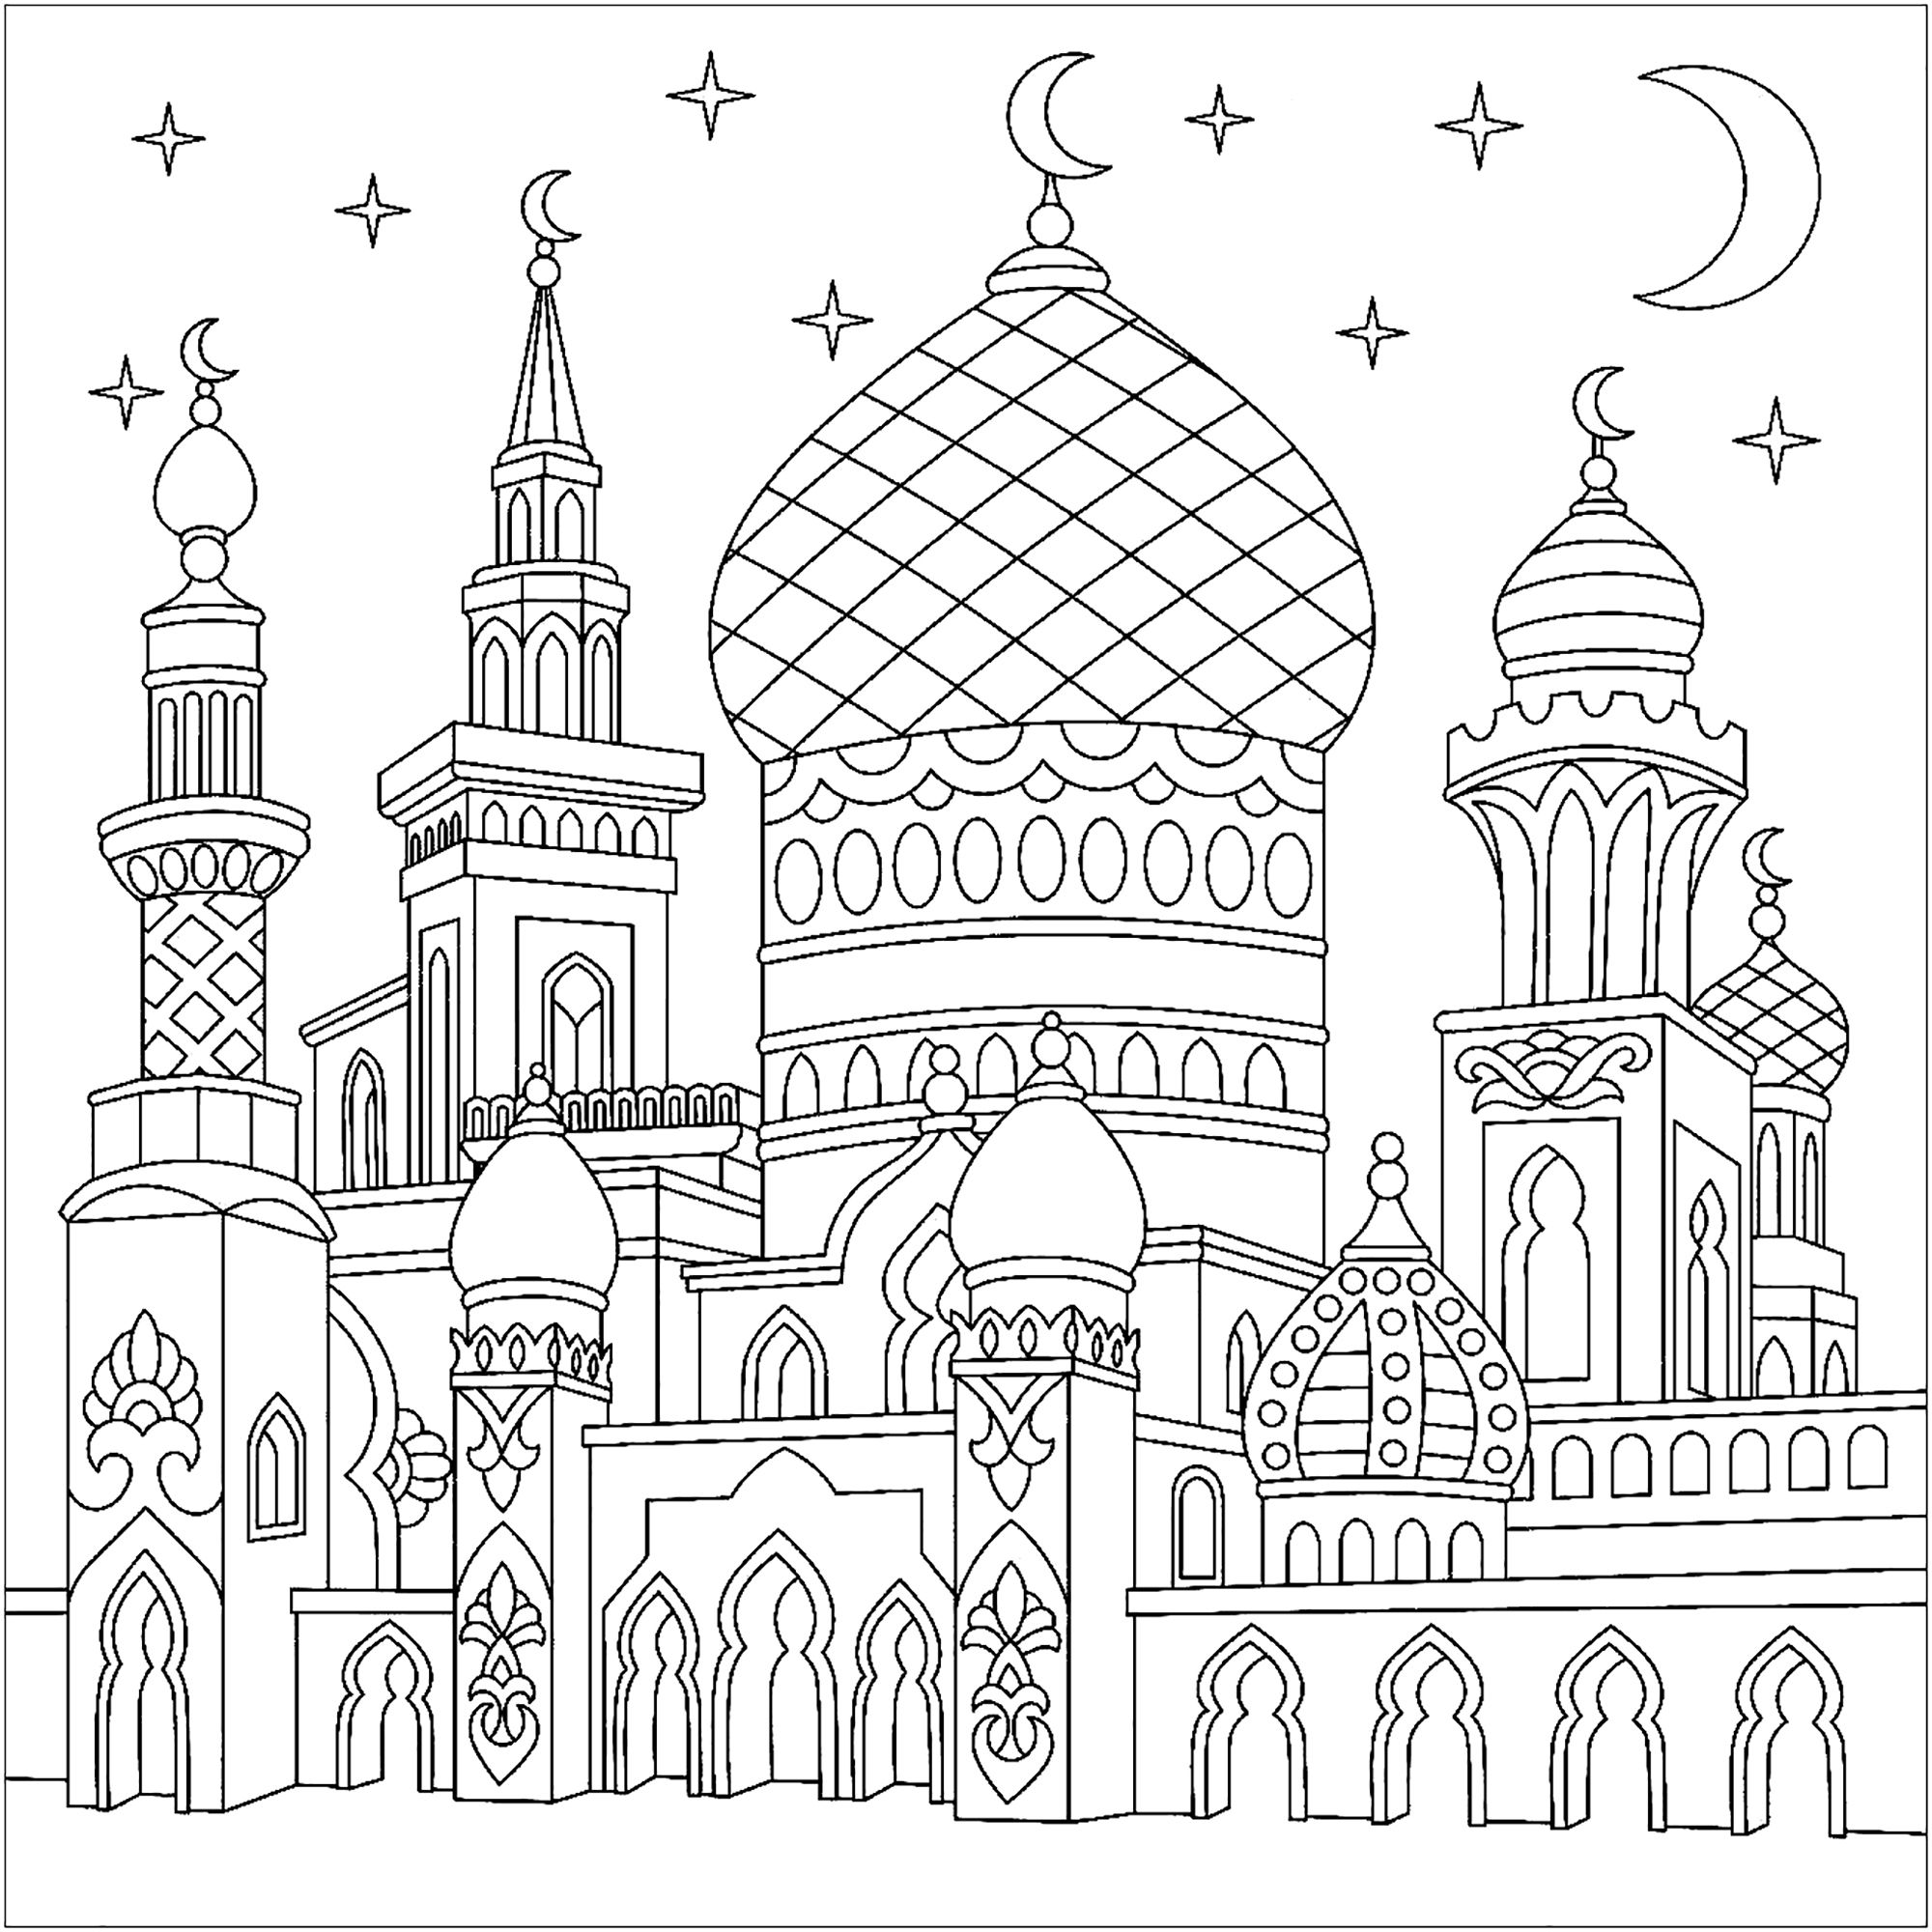 Pin By Nandini Acharya Rao On Coloring Pages